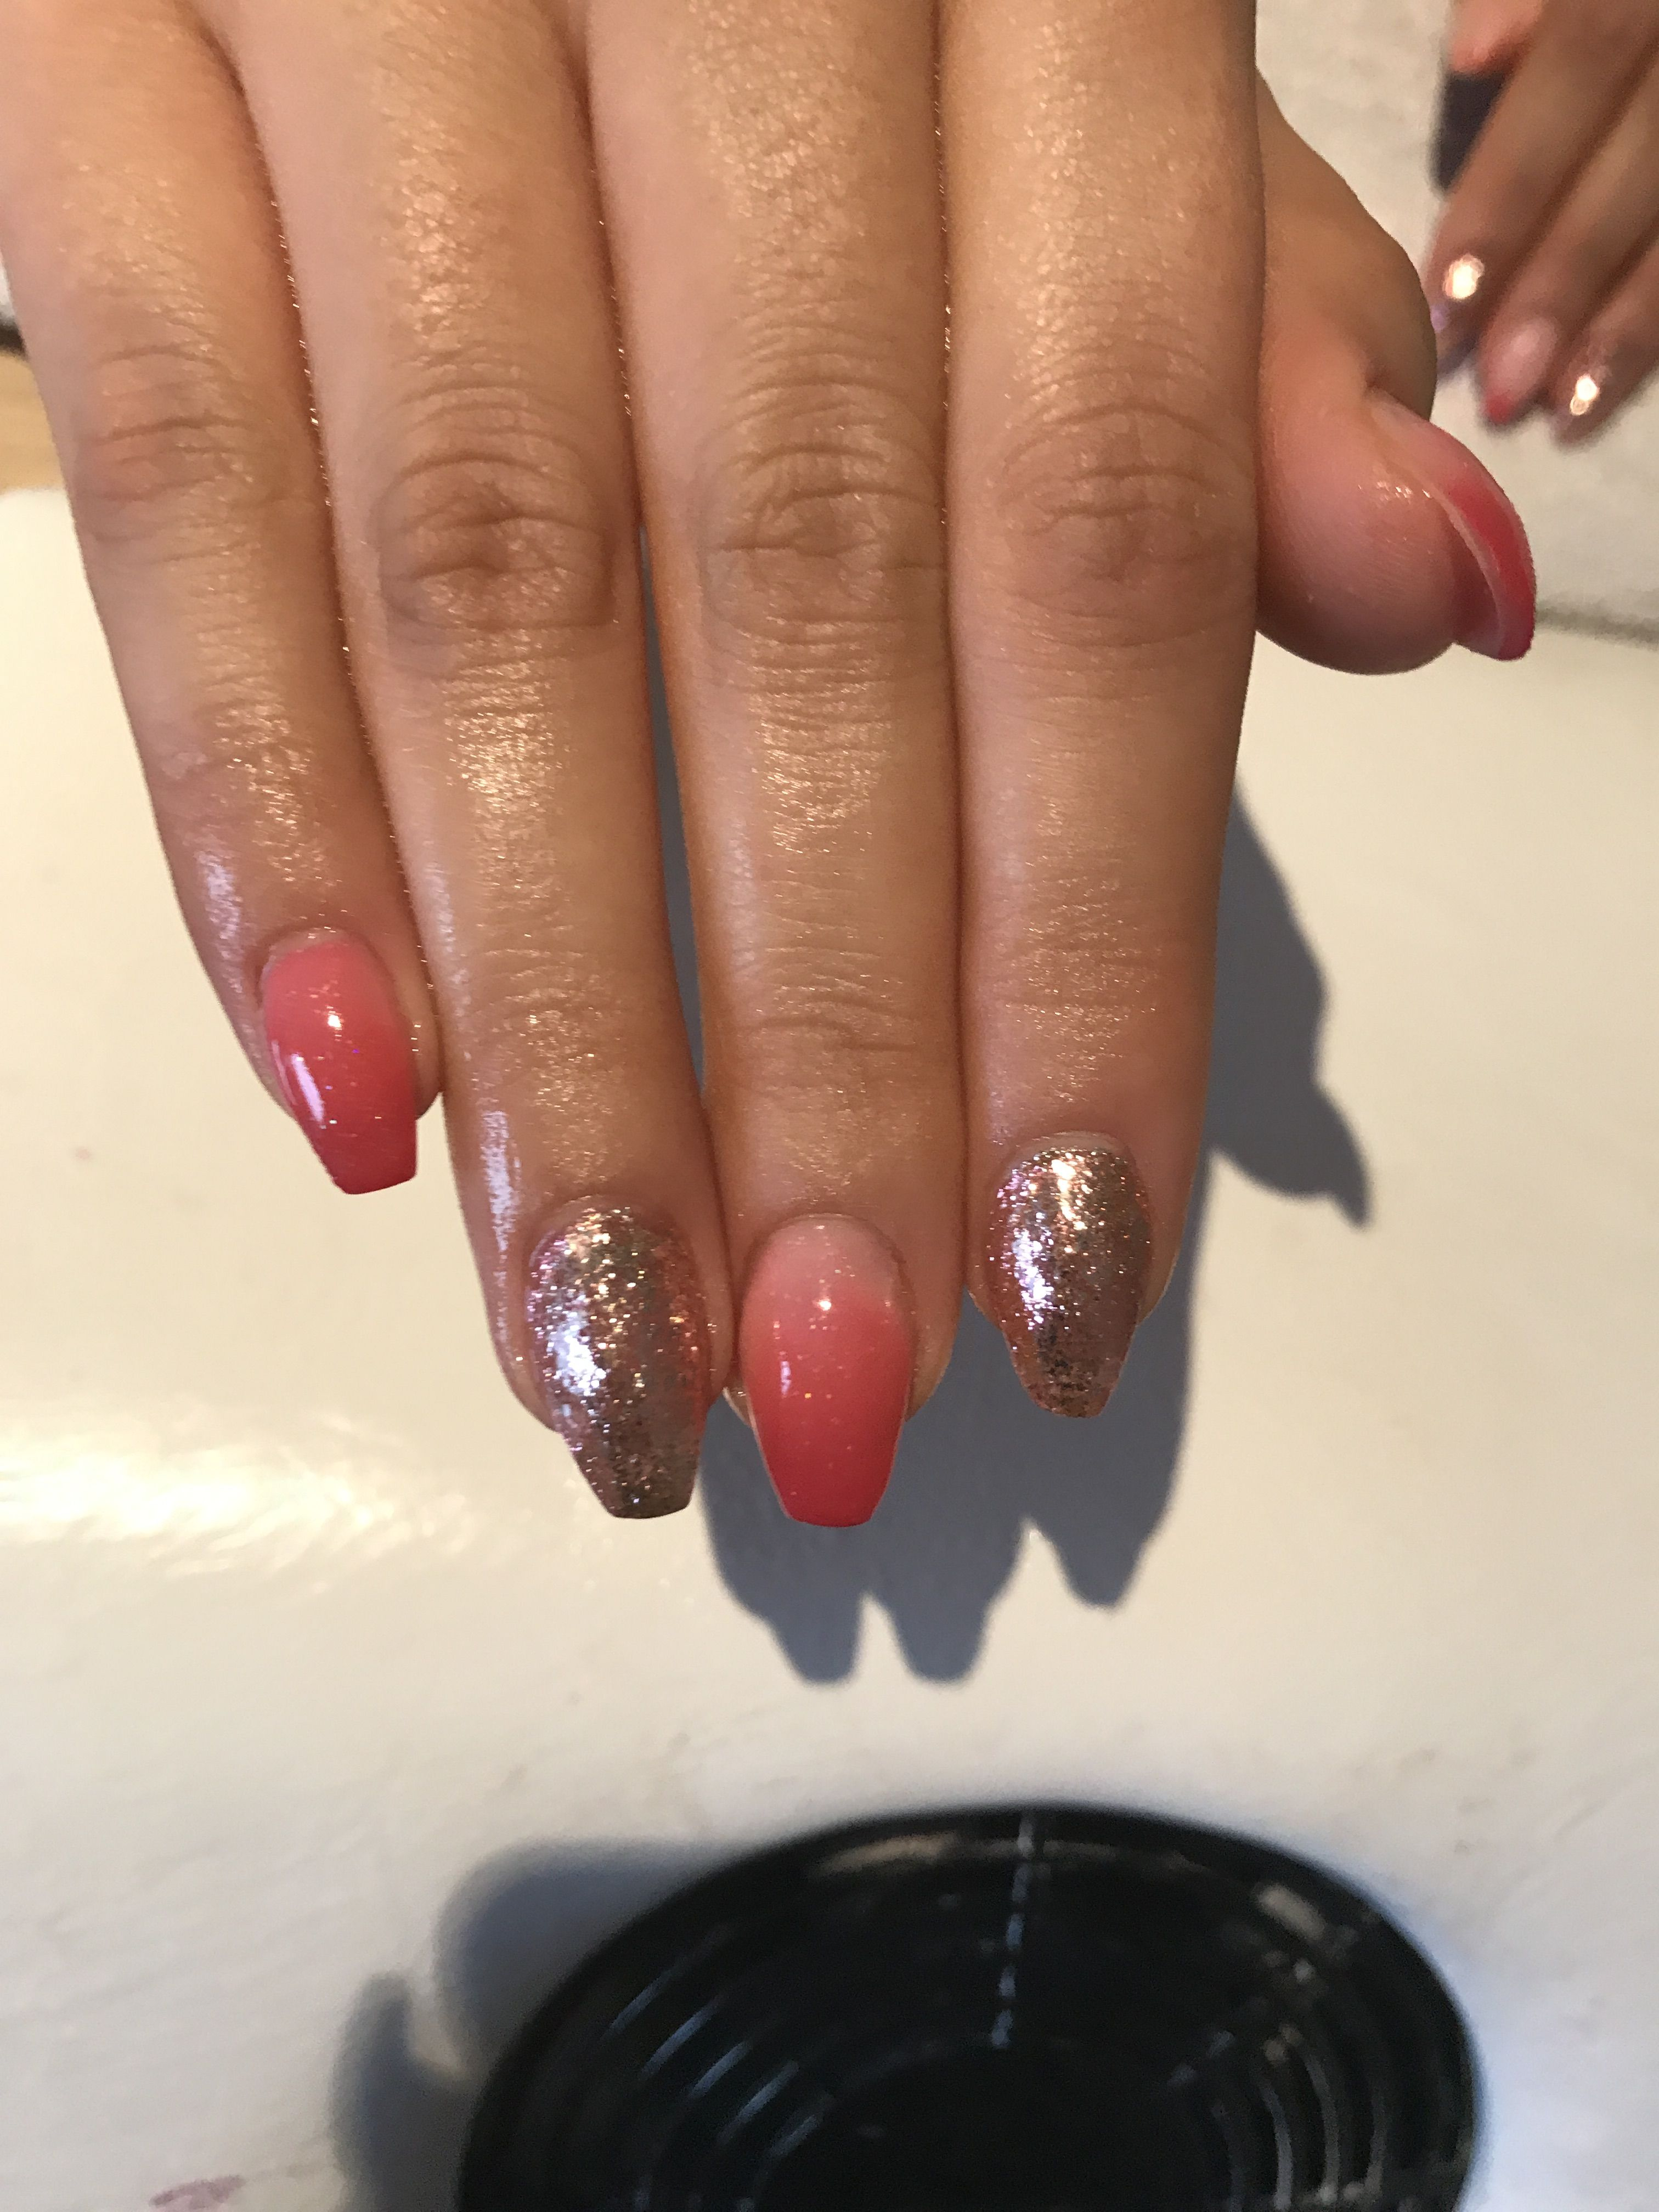 Pin By India Wylie On Nails Nail Designs Convenience Store Store